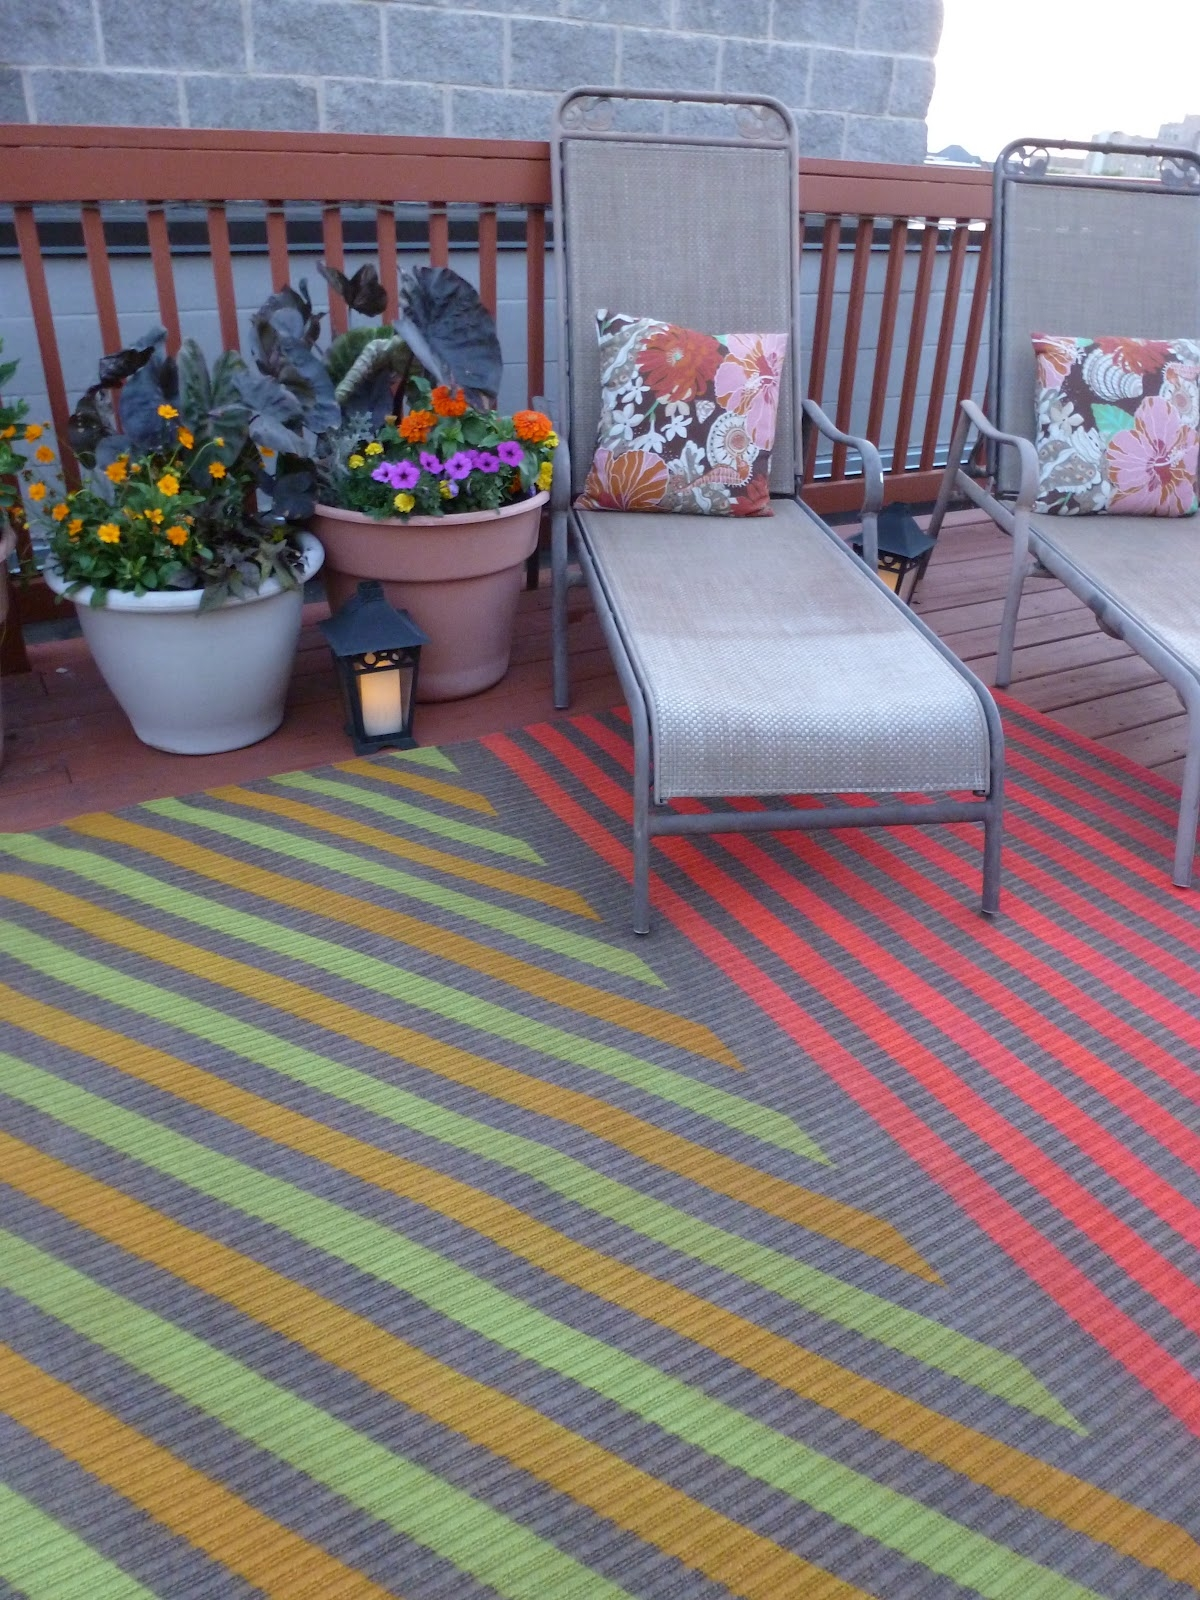 My Insanely Awesome Diy Outdoor Rug Design Improvised Within Outdoor Rugs For Deck (View 12 of 15)